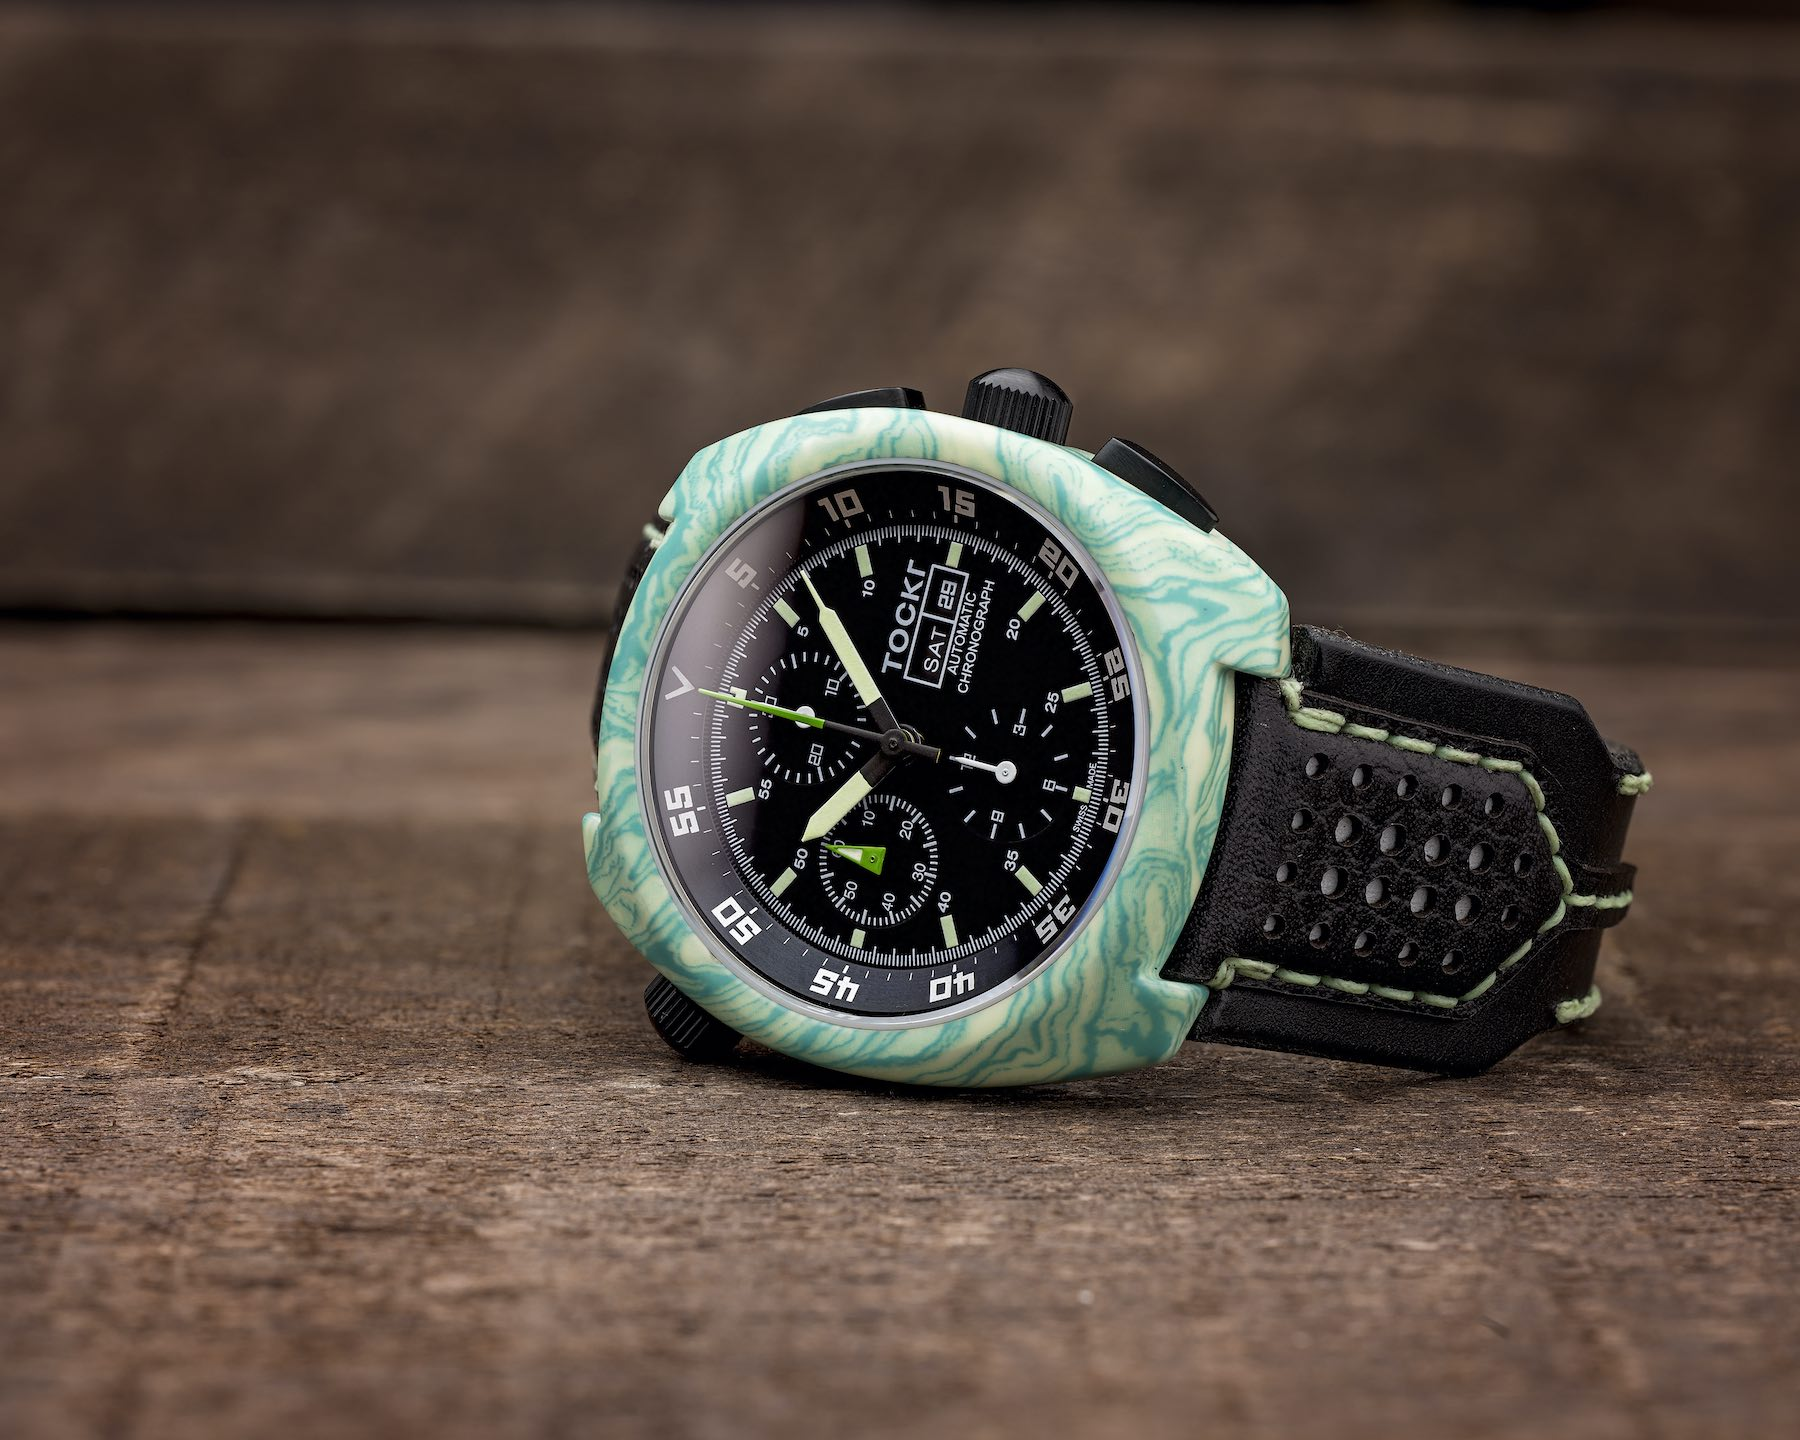 Tockr Air-Defender Lume with Luminescent Hydro Dipped Cases - 6